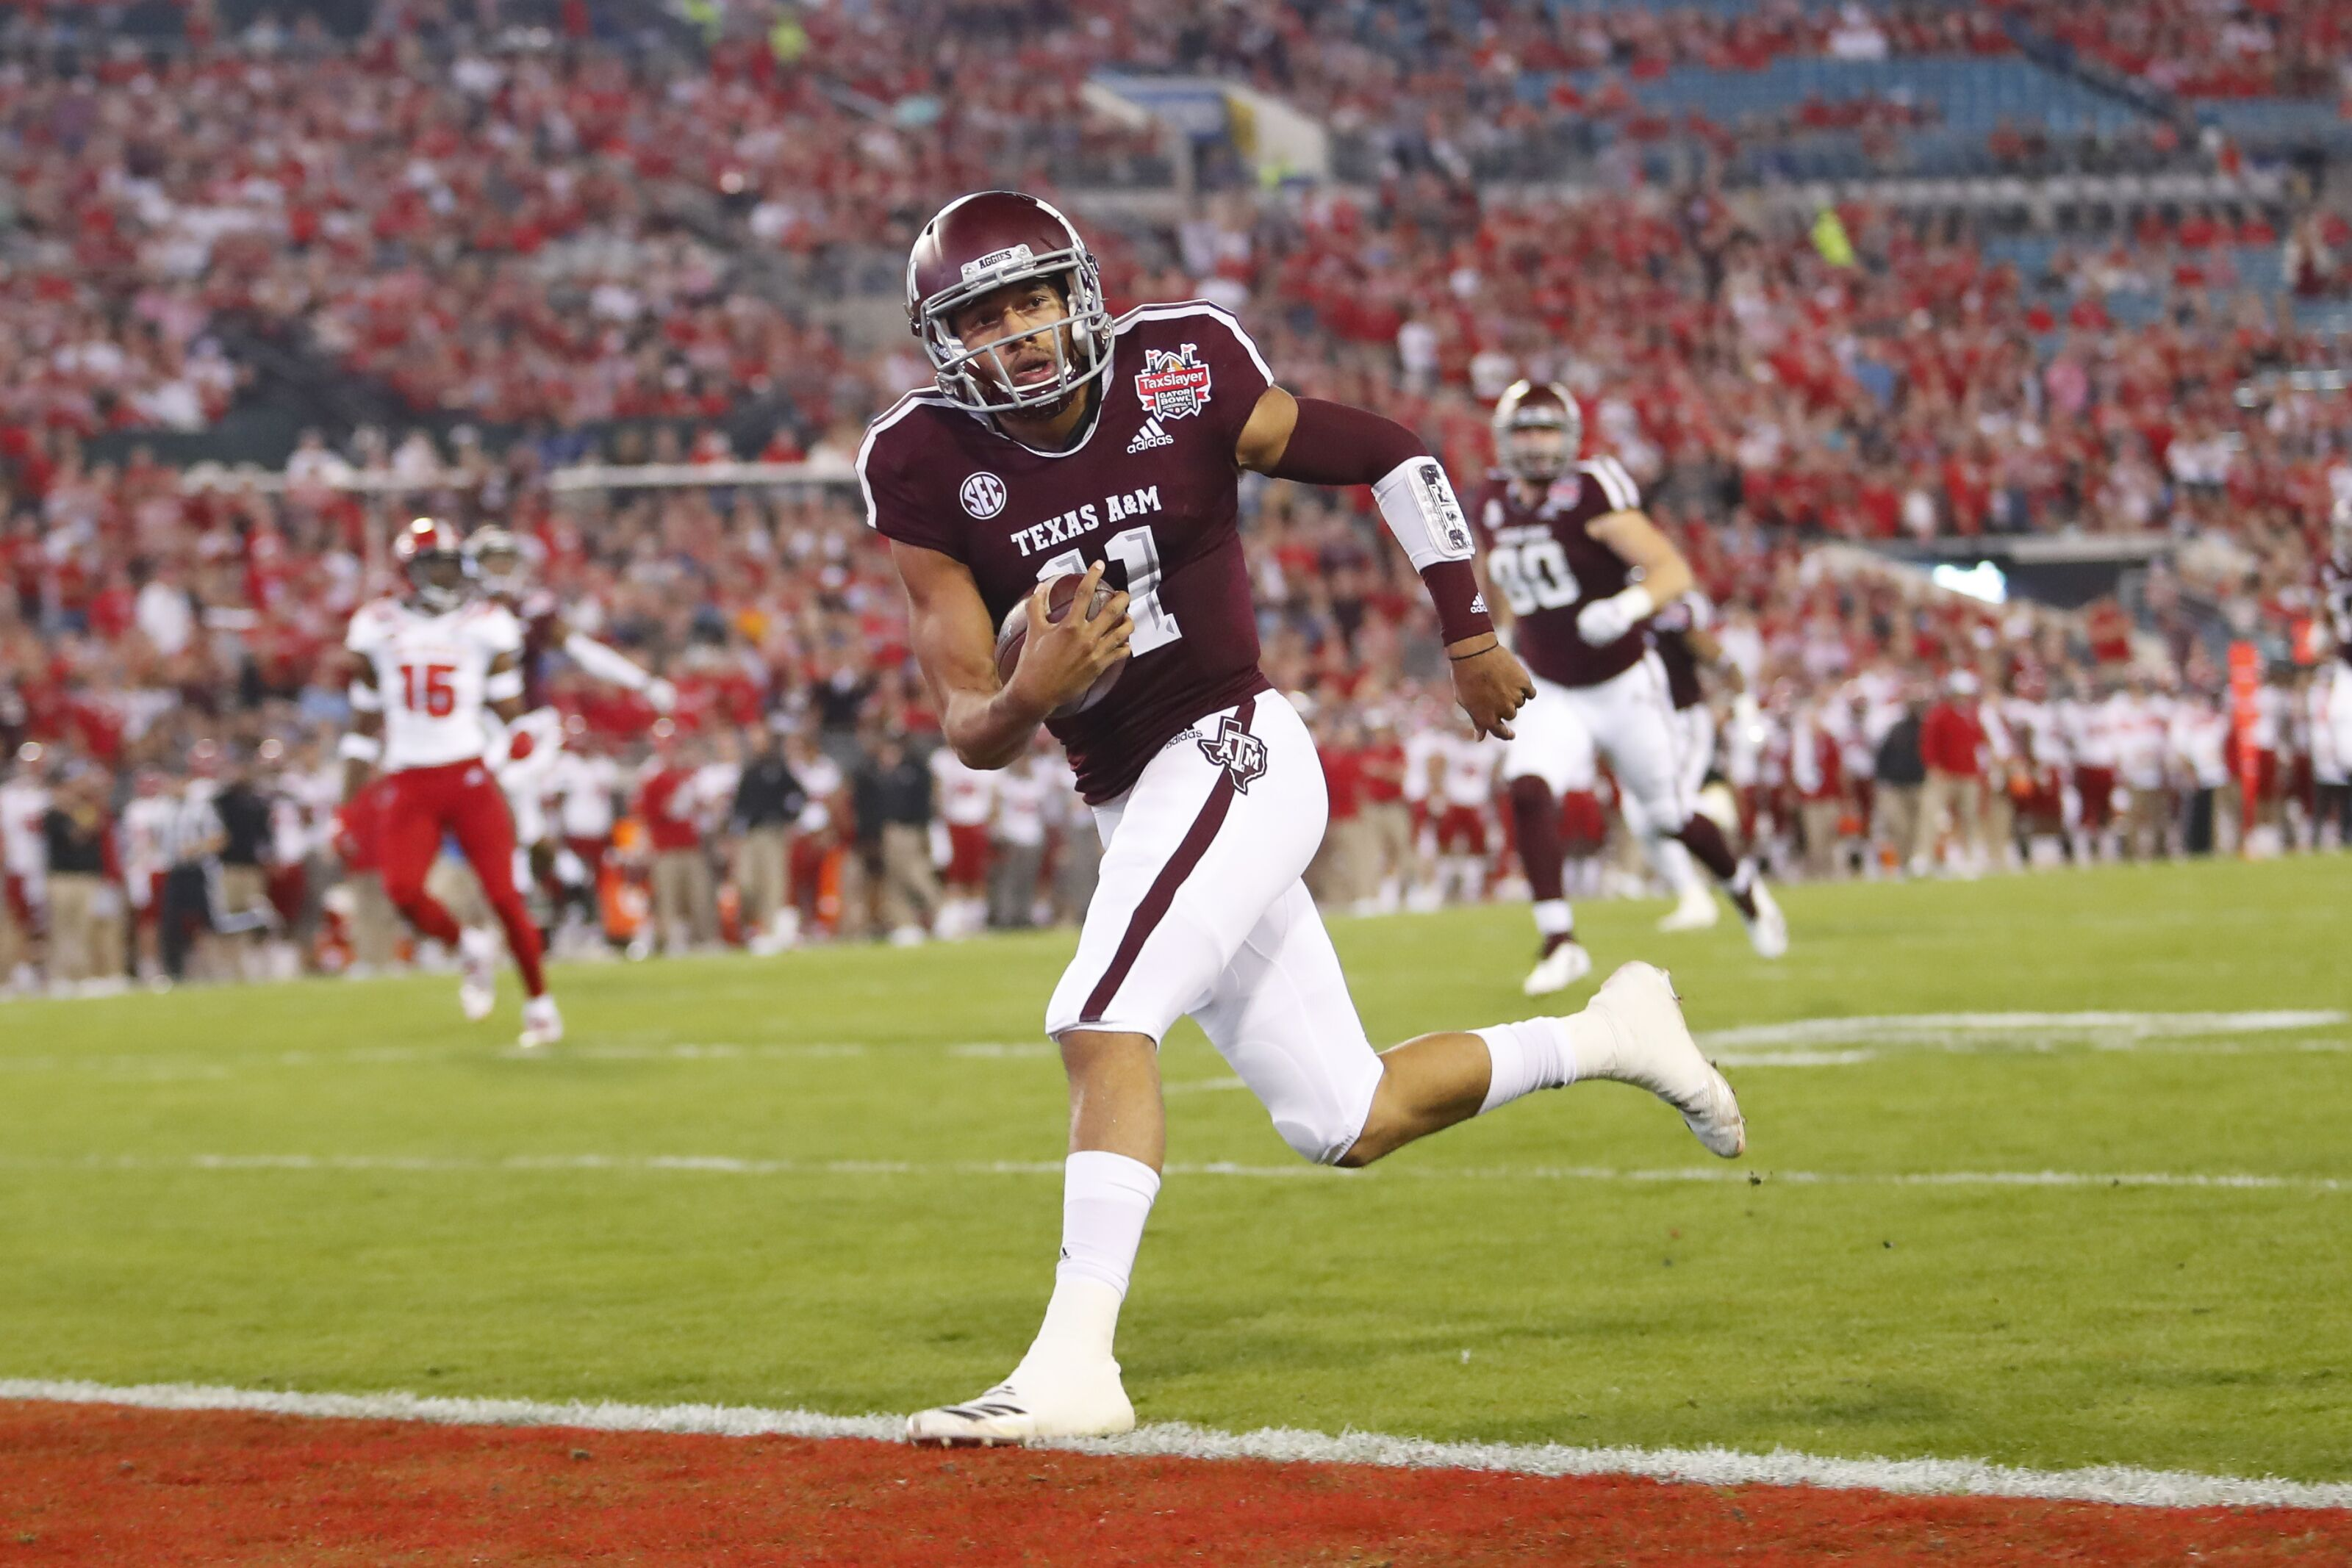 Texas A&M Football: Aggies at 11 in FPI